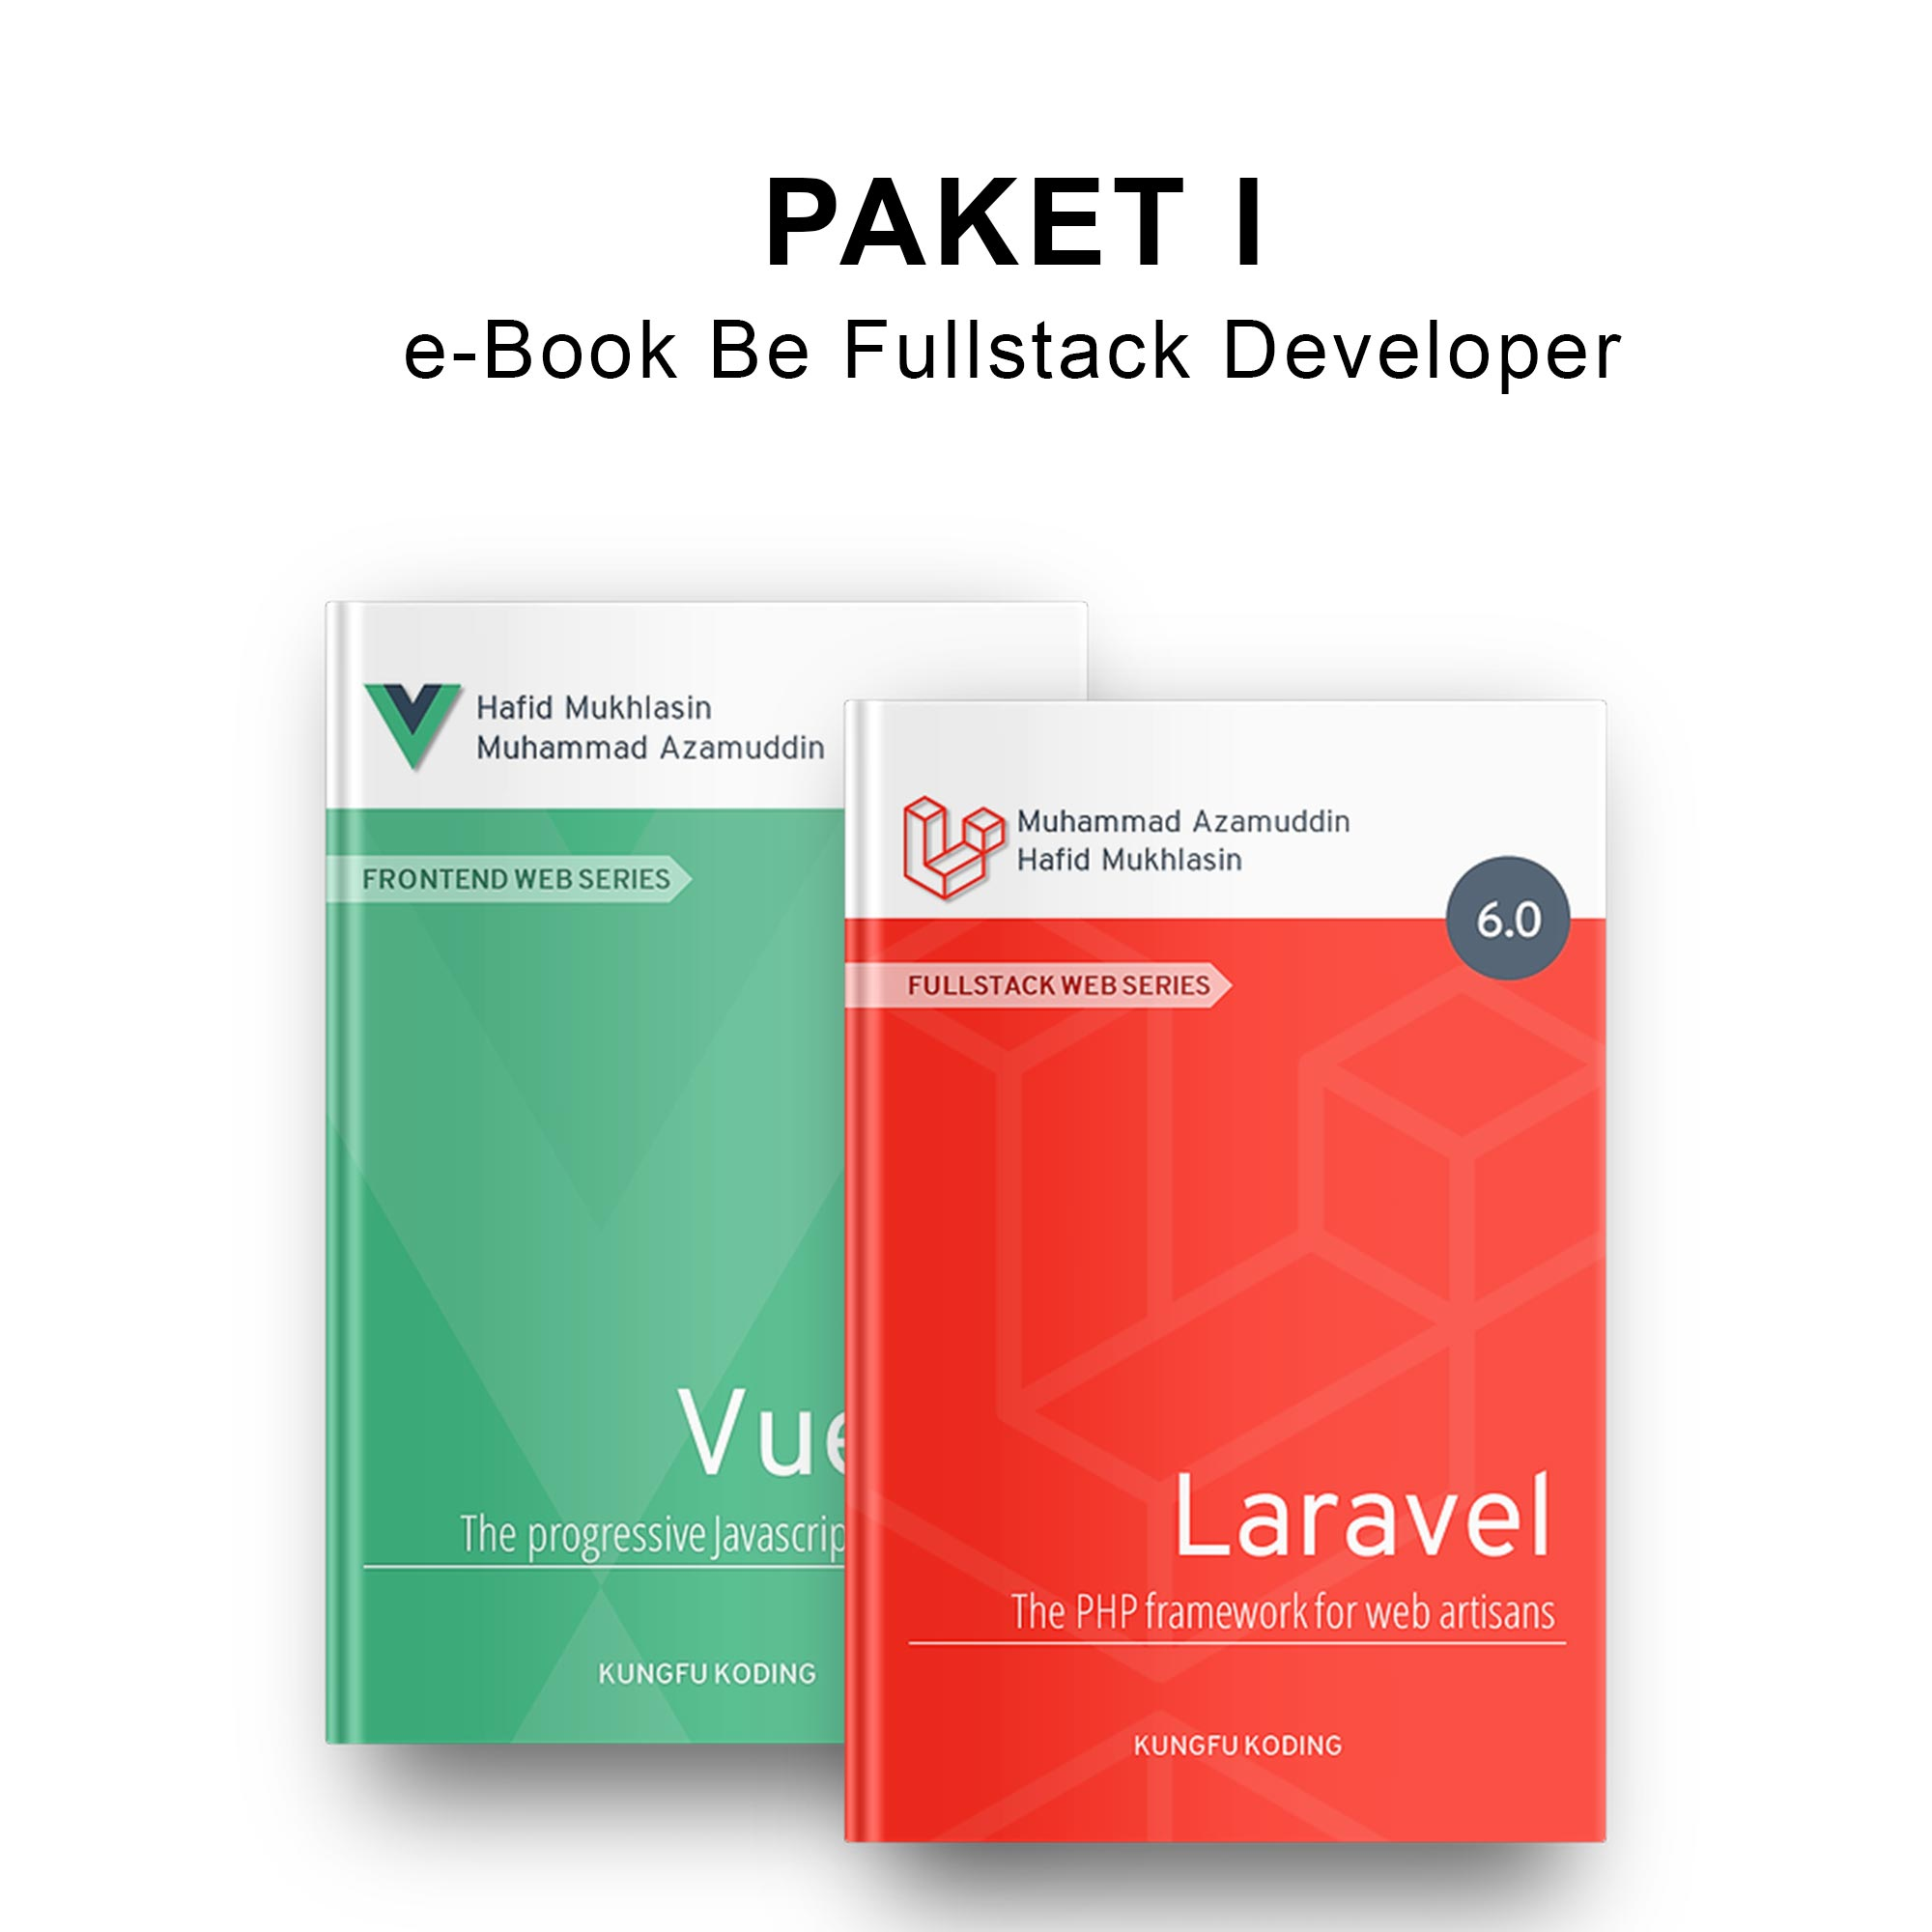 PAKET I : e-Book Be Fullstack Developer